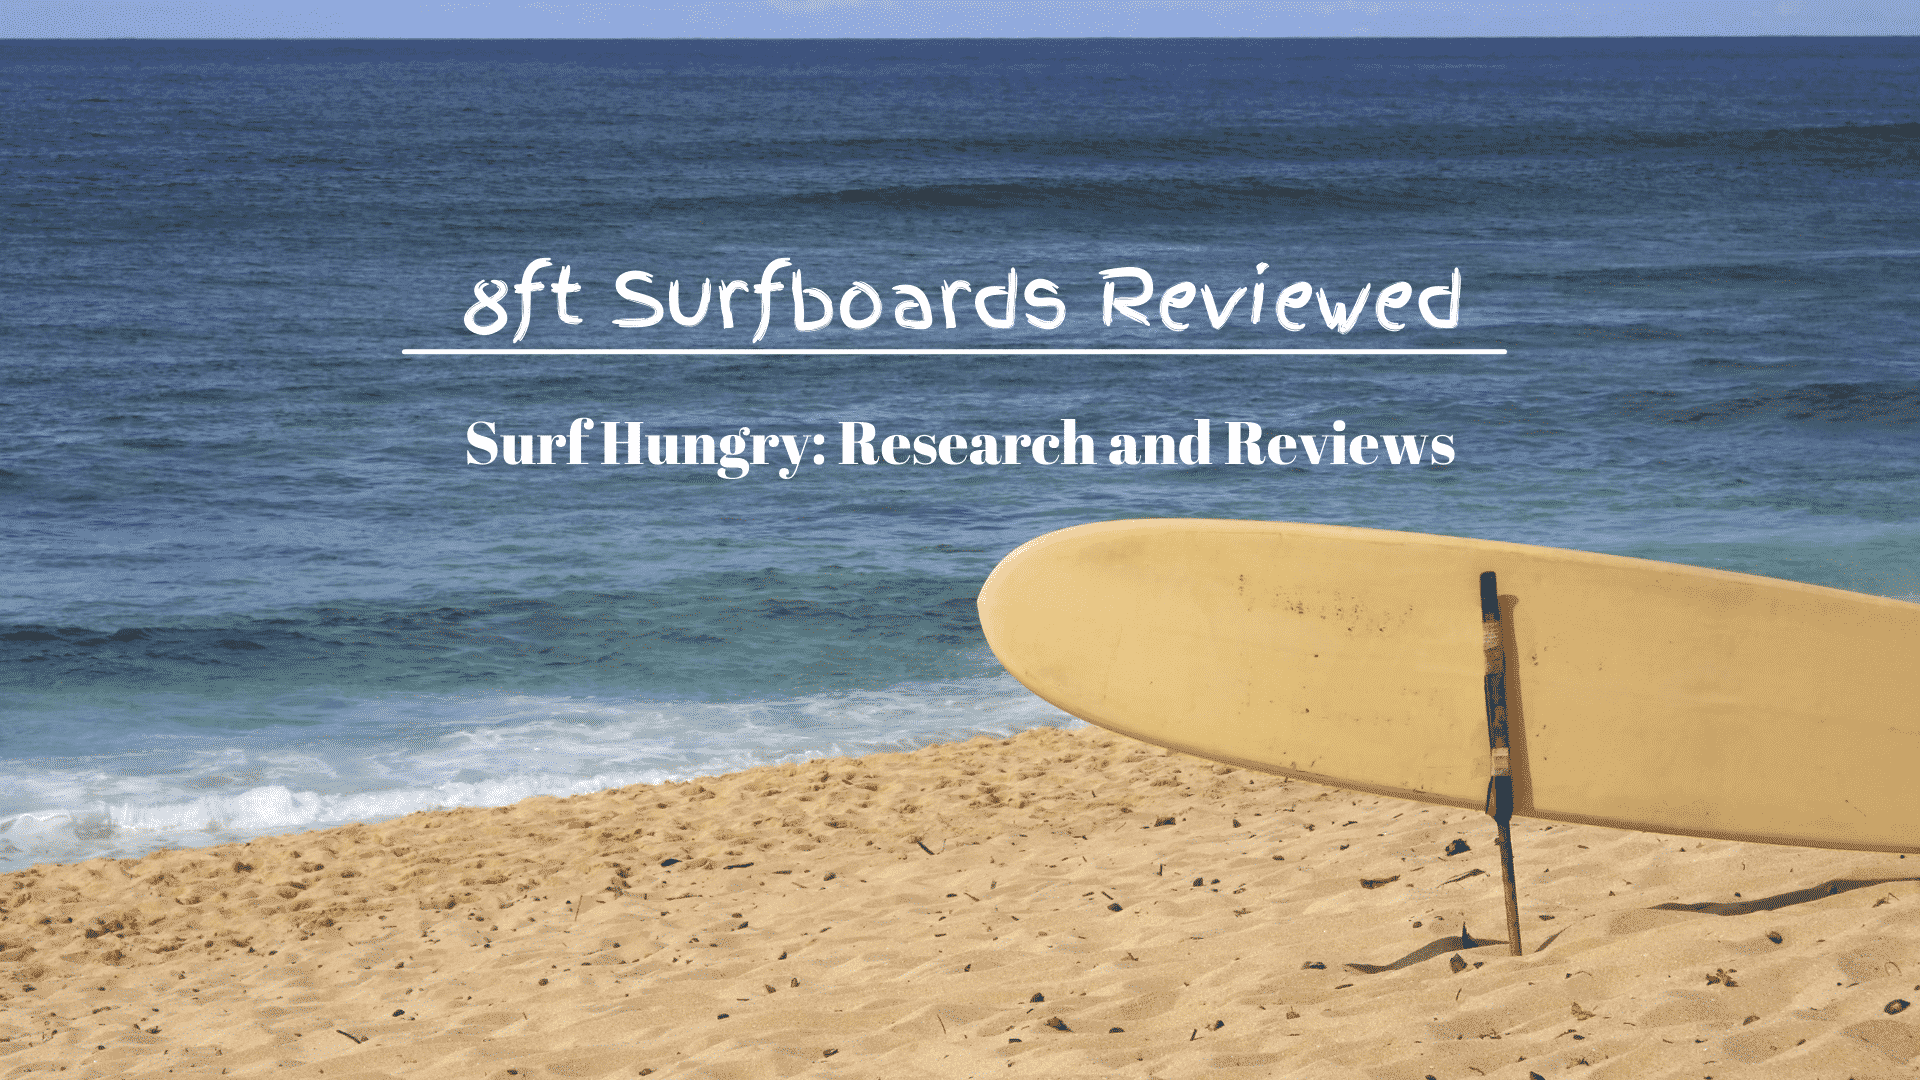 8ft Surfboards